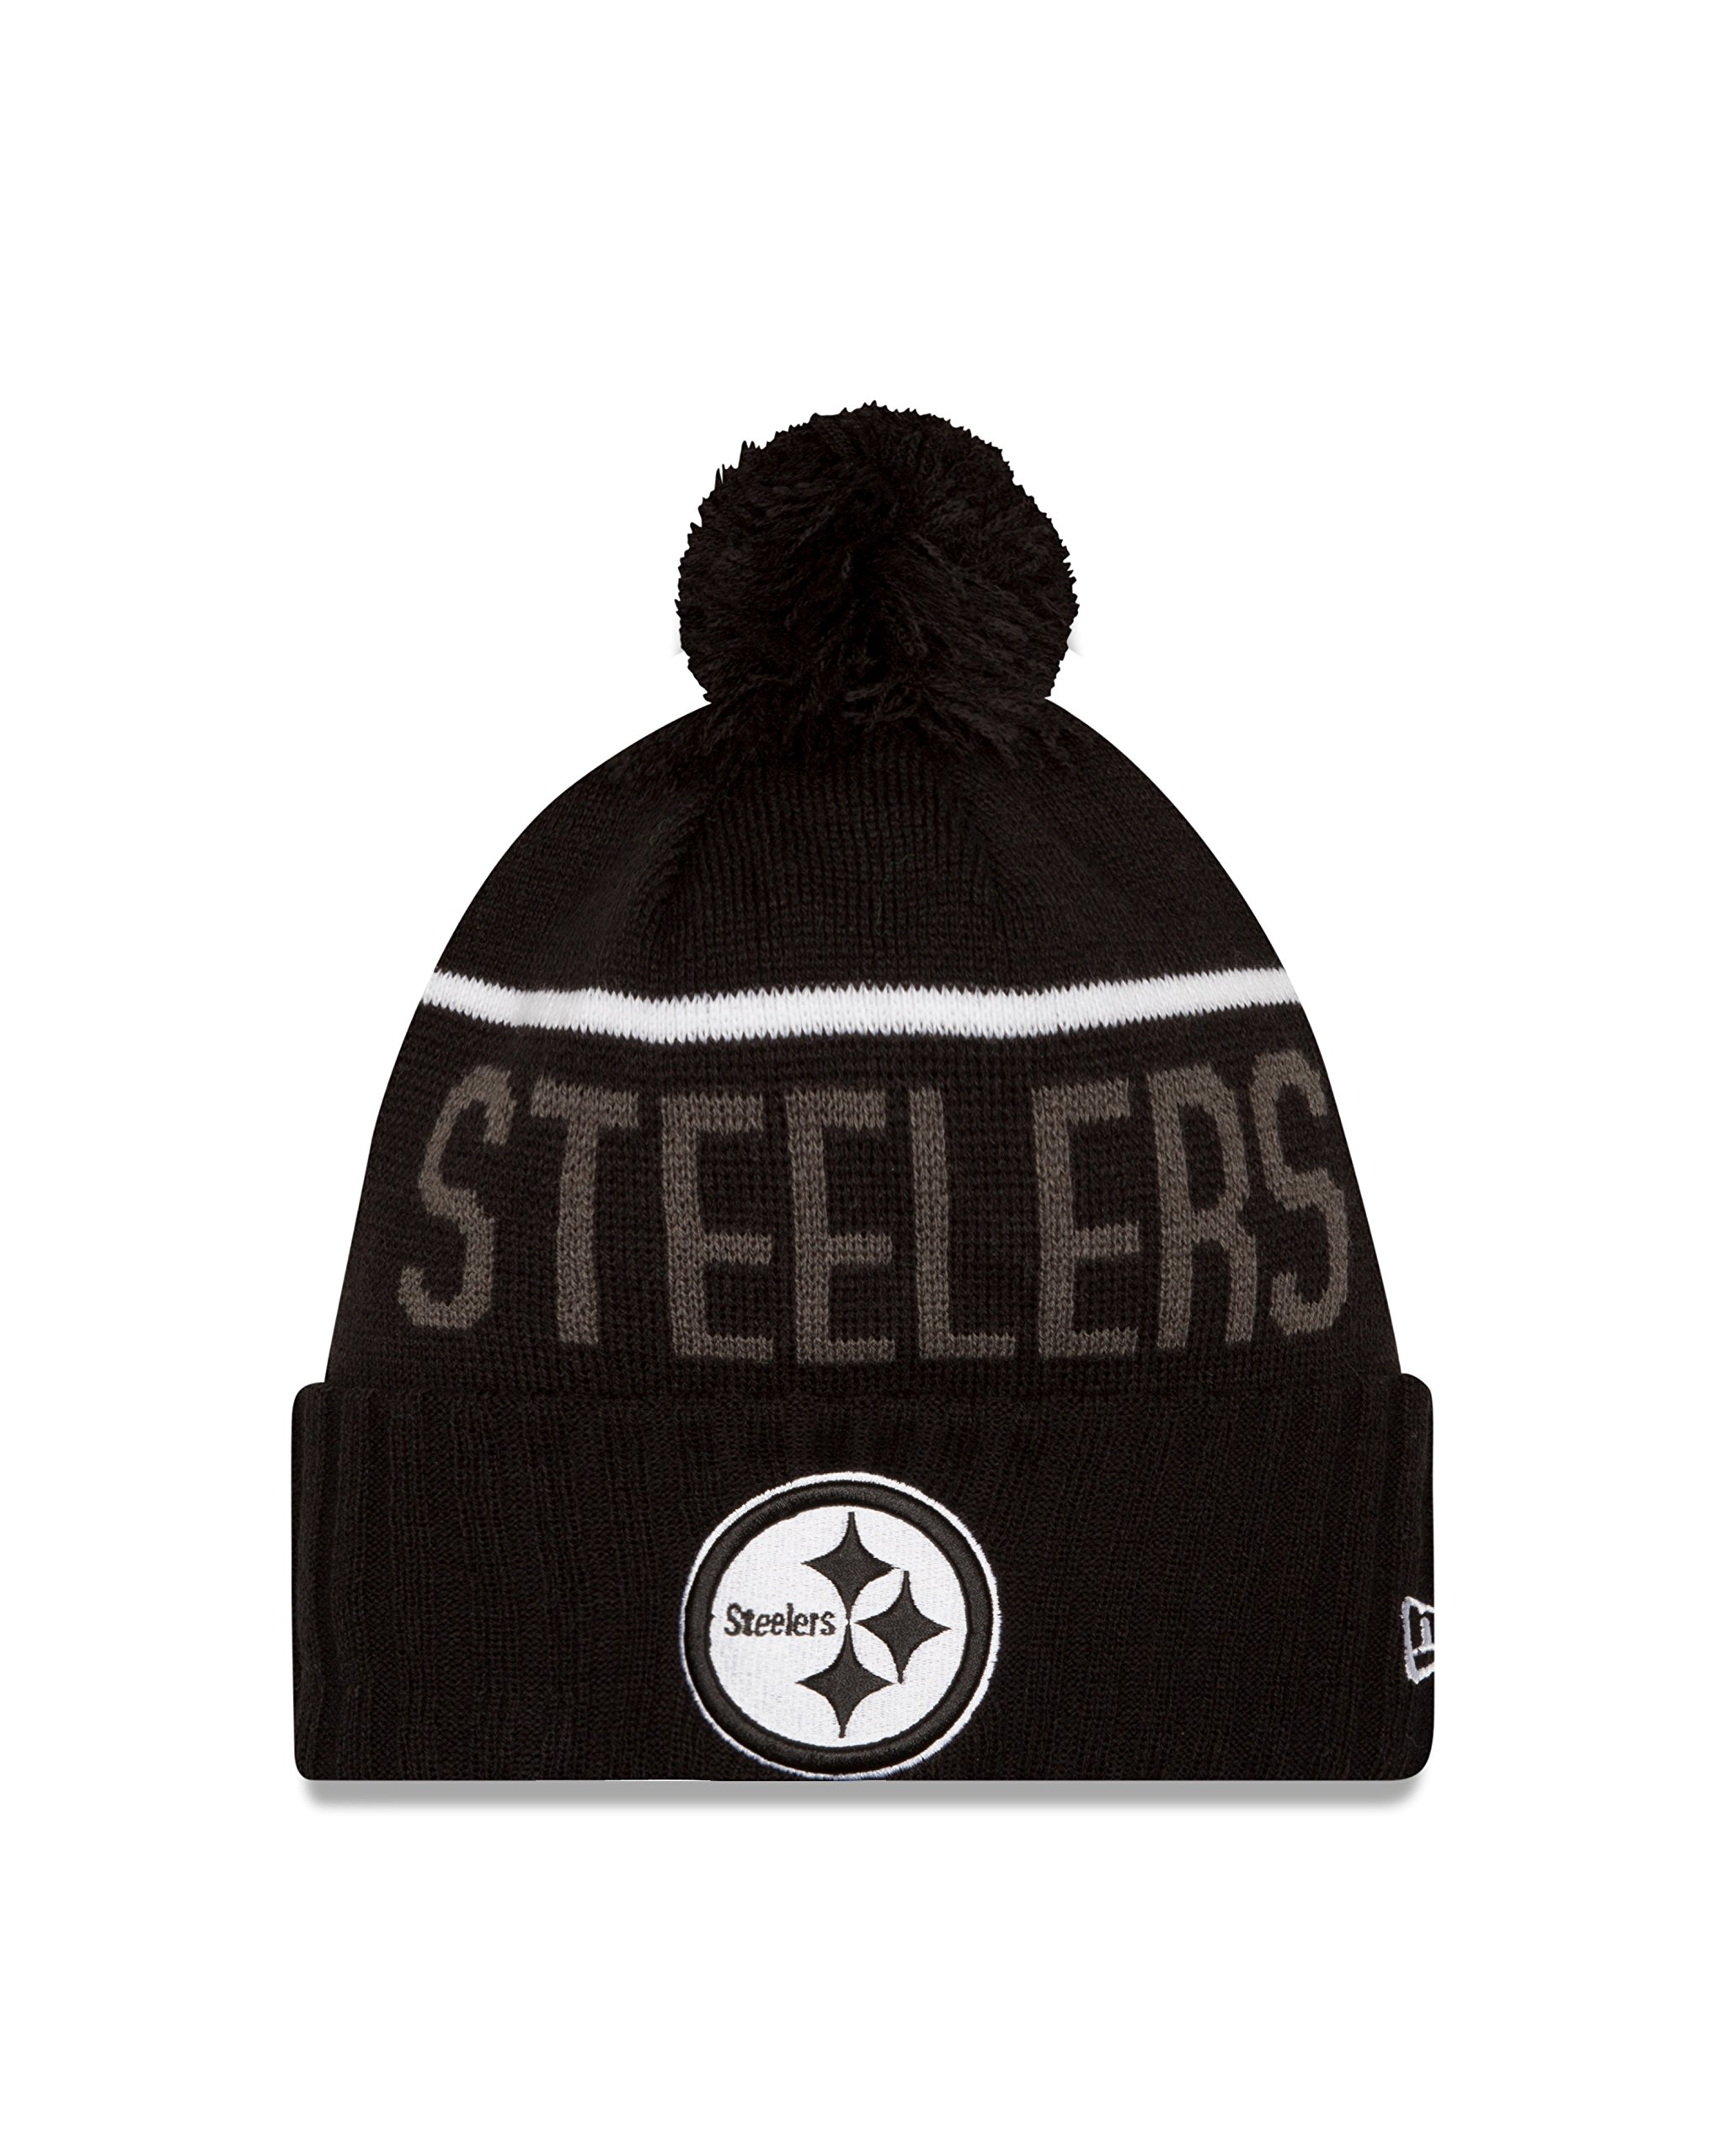 NFL Pittsburgh Steelers 2015 Sport Knit, Black, One Size by New Era